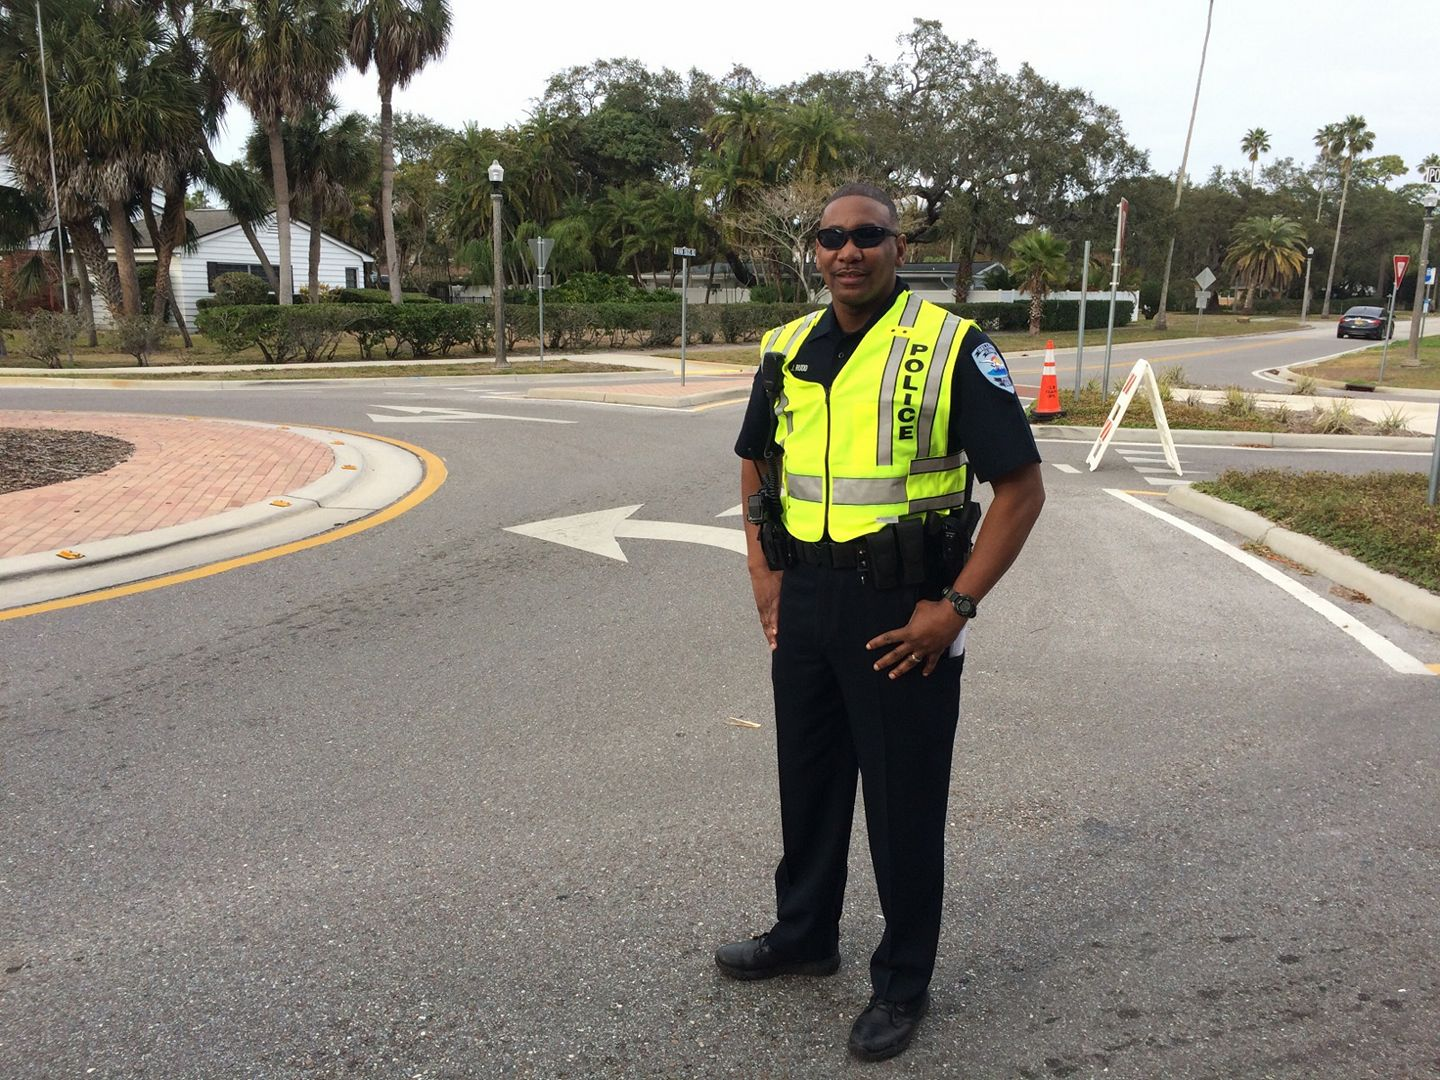 Officer Rudd stands in a street with his safety vest on for his Employee of the Month photo.